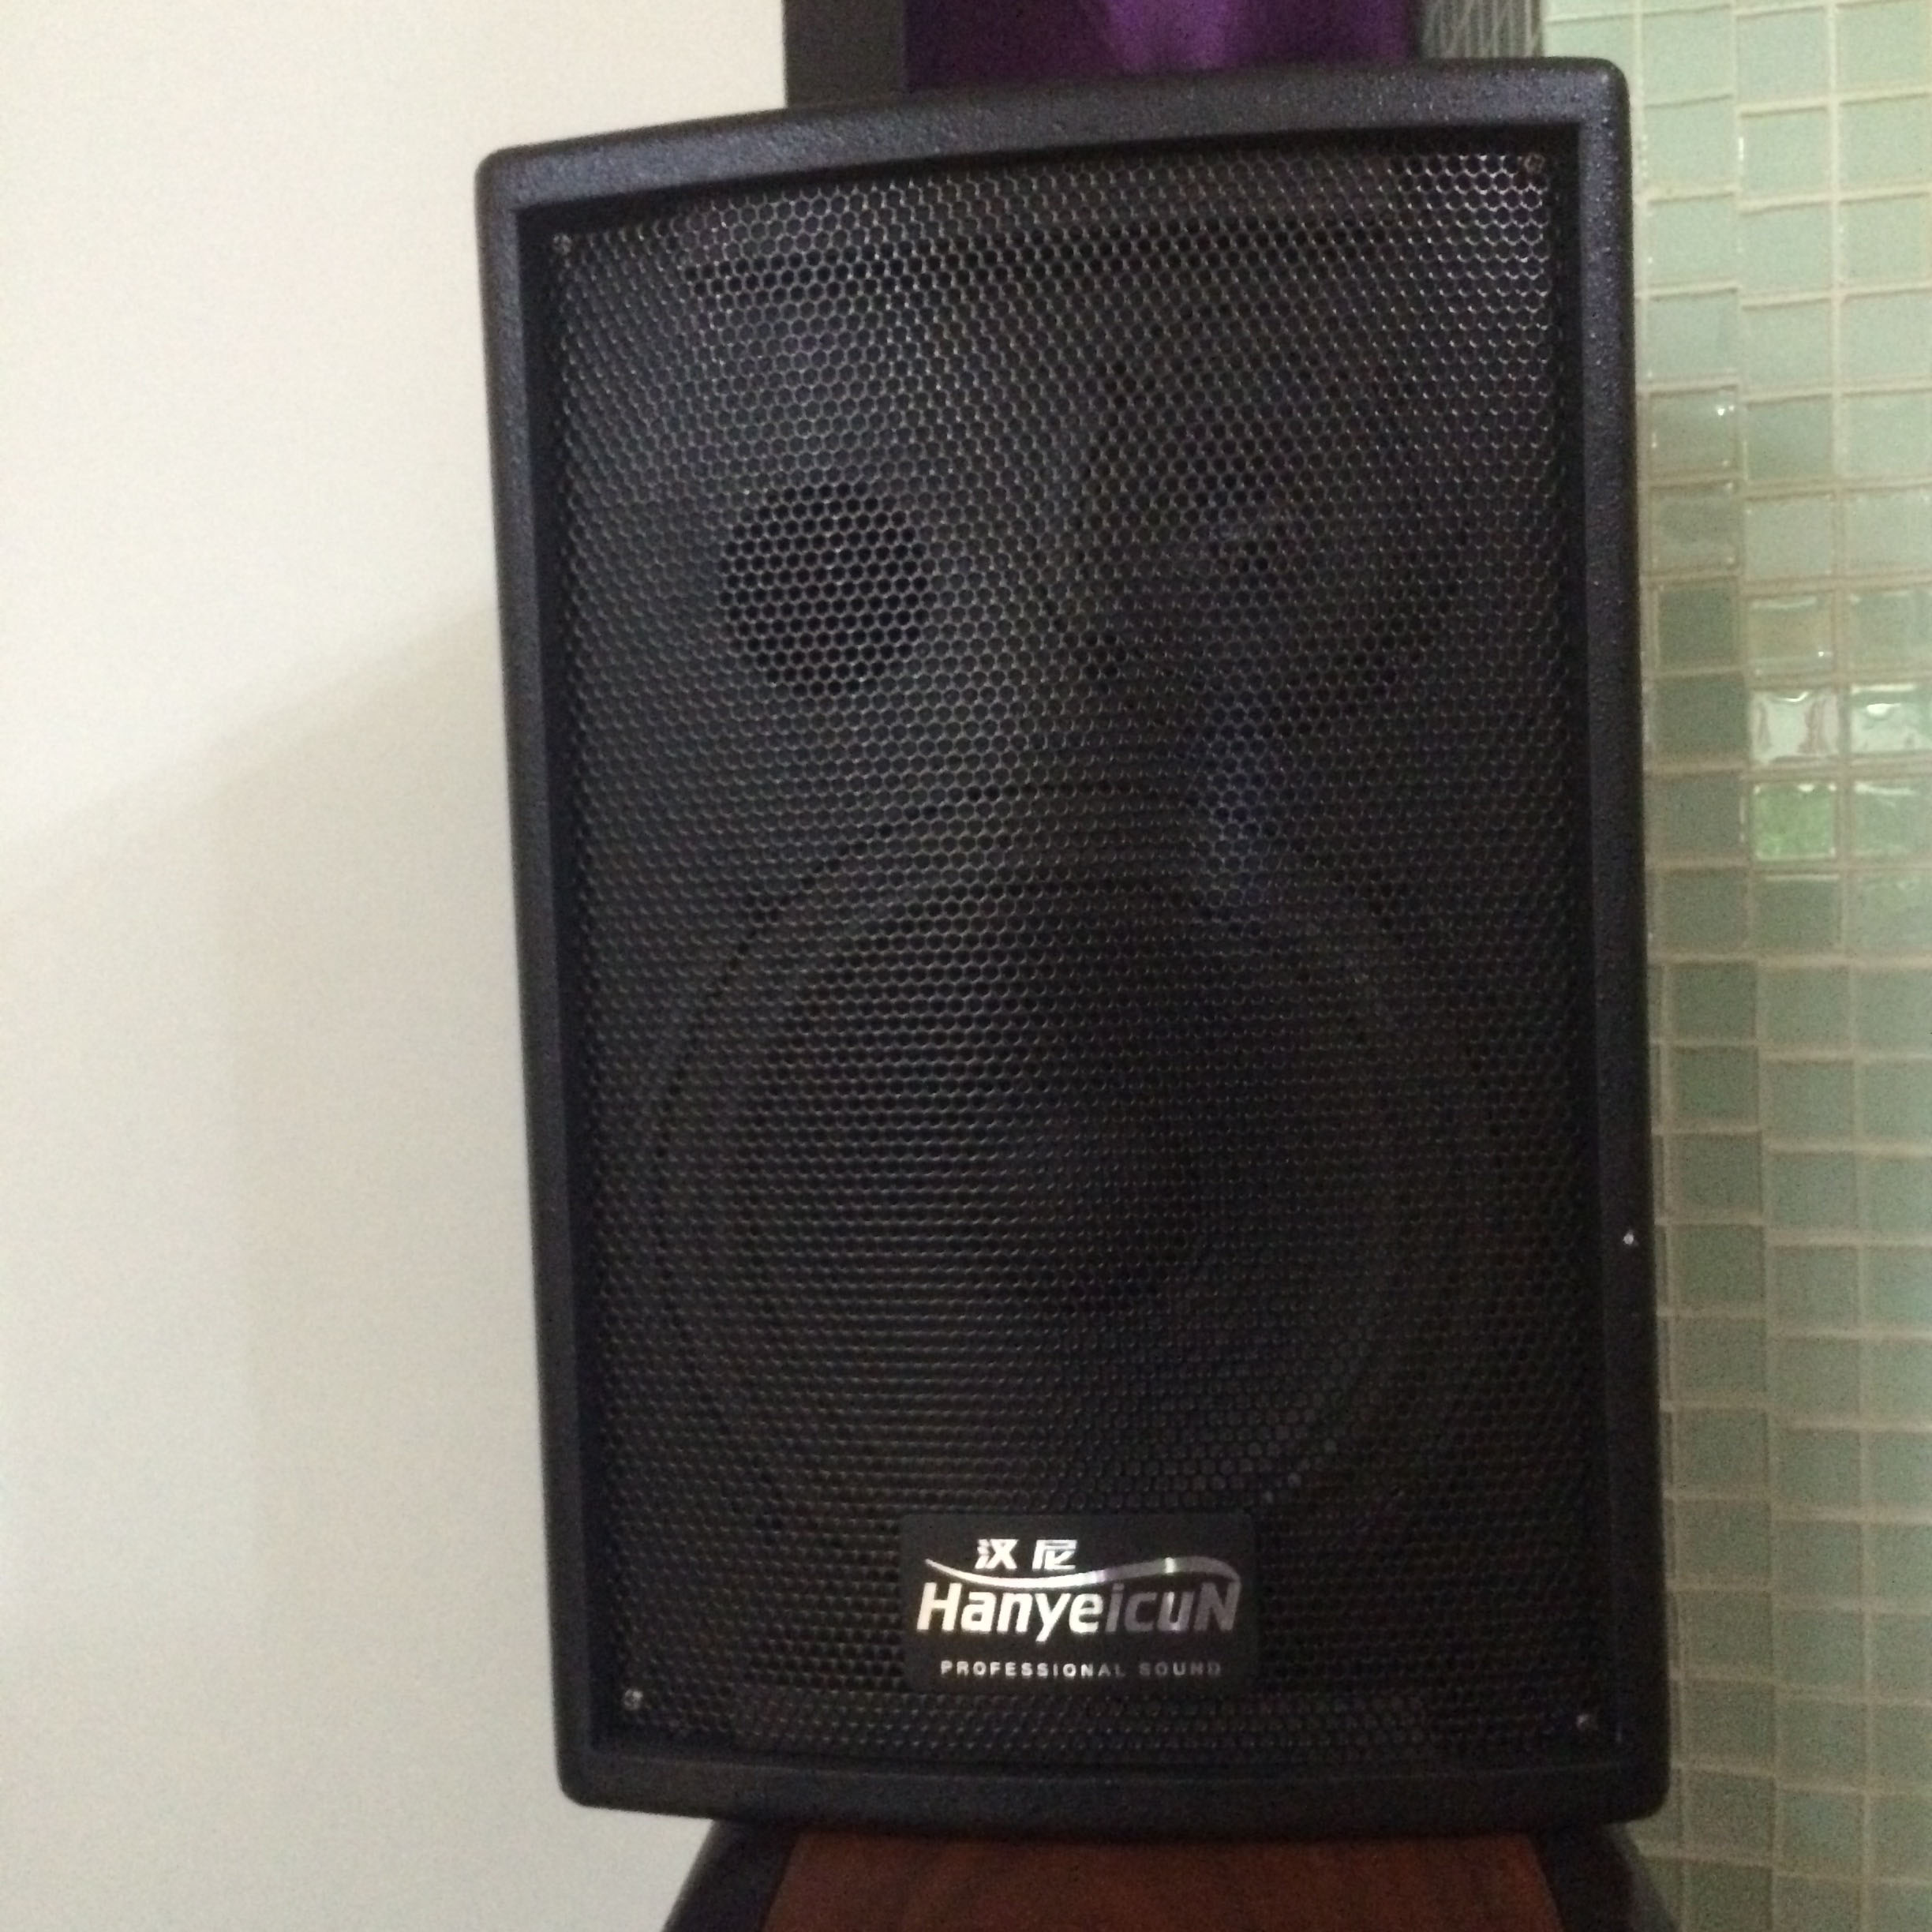 Hanni V-8 wall mounted power amplifier speaker full frequency sound 200W stage theater audio embedded Ceiling Speaker